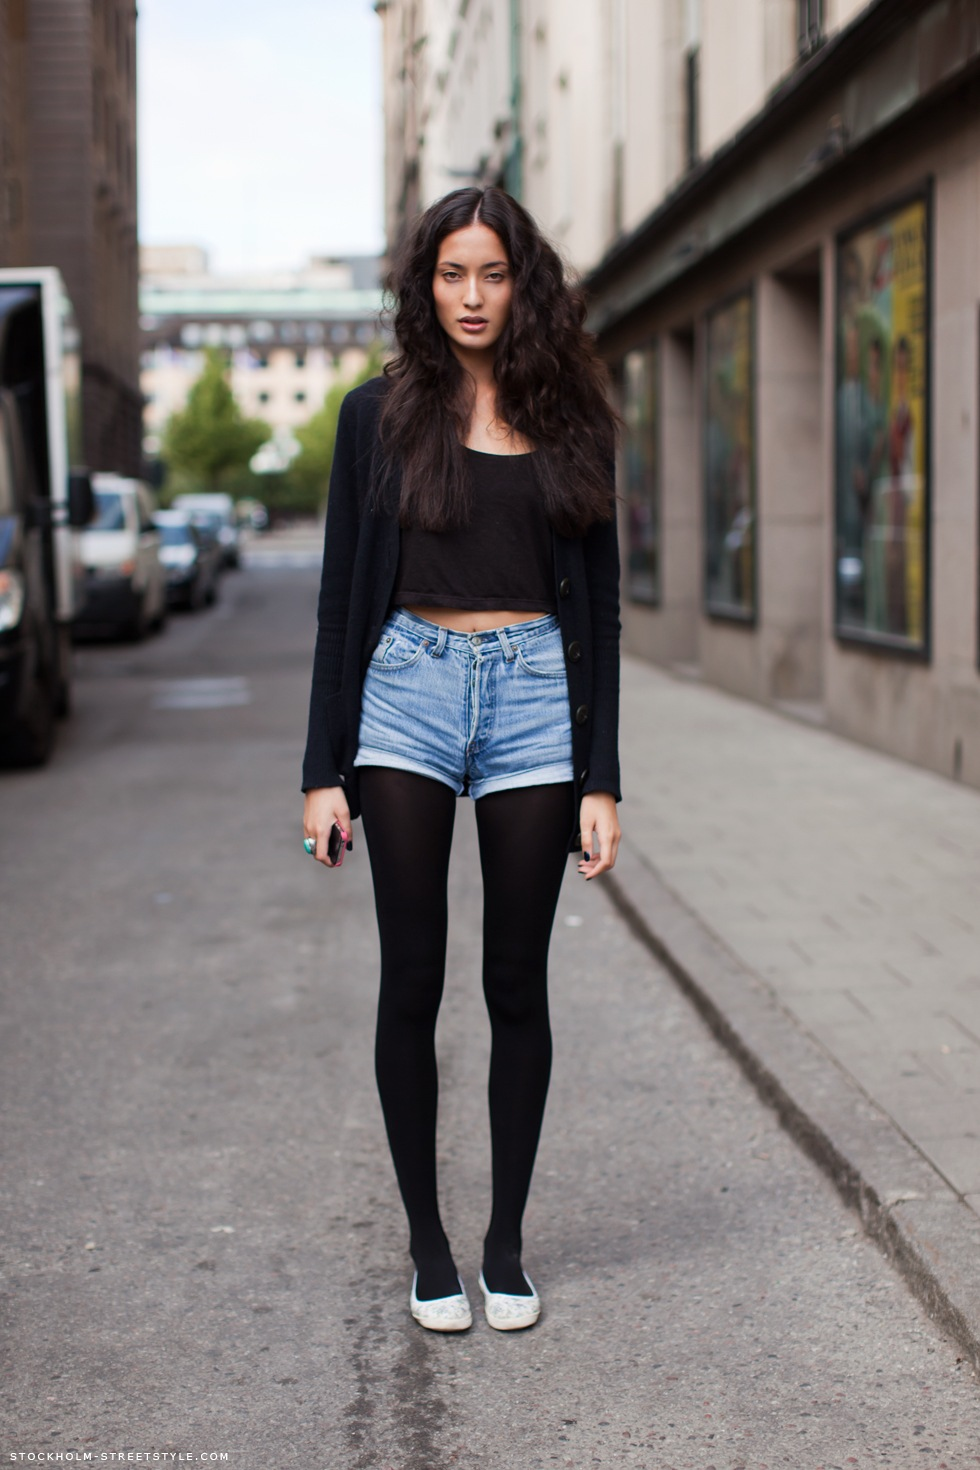 I love seeing Girls wearing black Tights and red